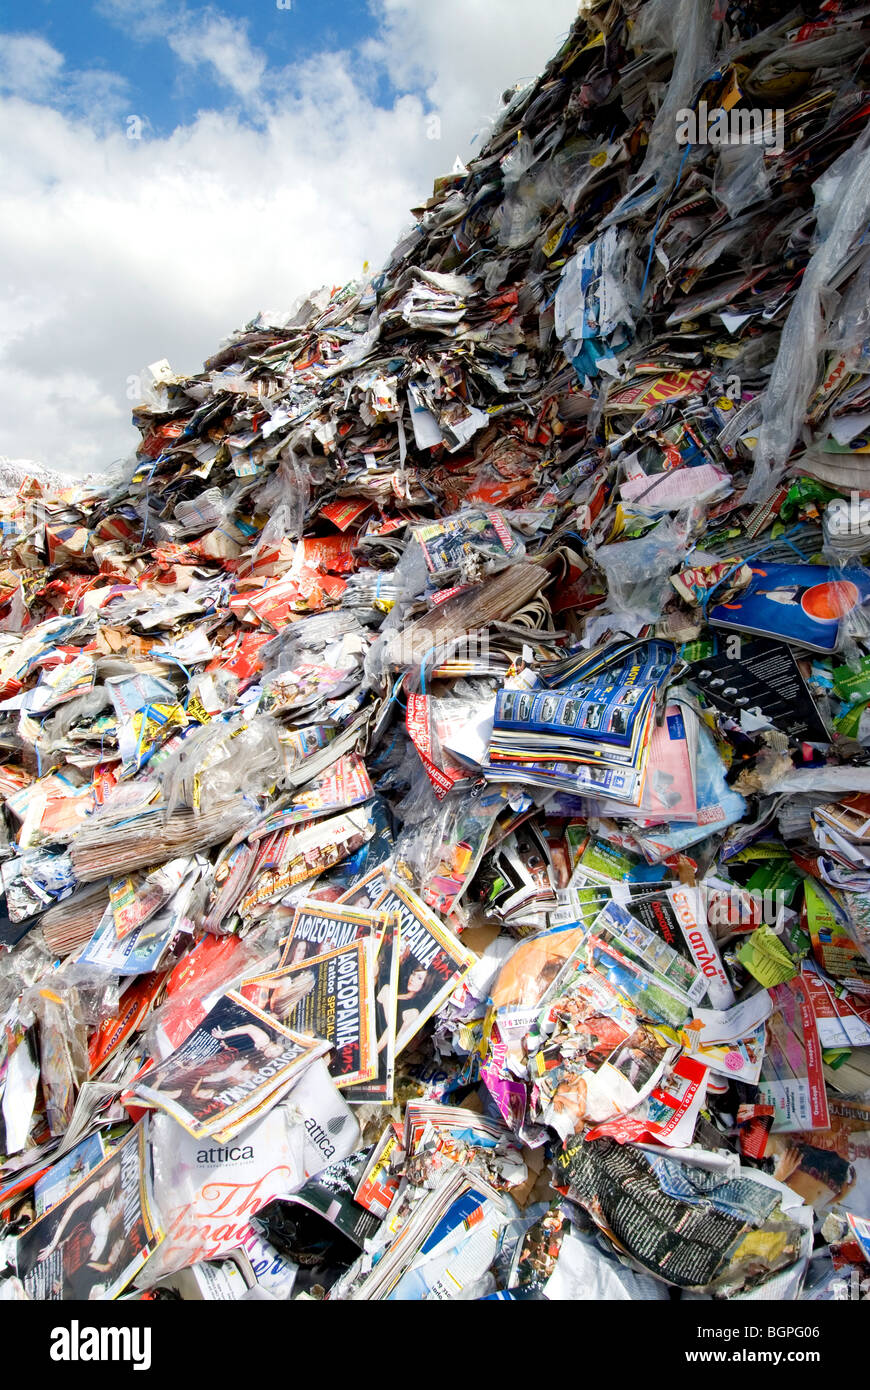 Heaps of recyclable paper, magazines, books stored at the yard of the paper recycling factory ready to be processed - Stock Image